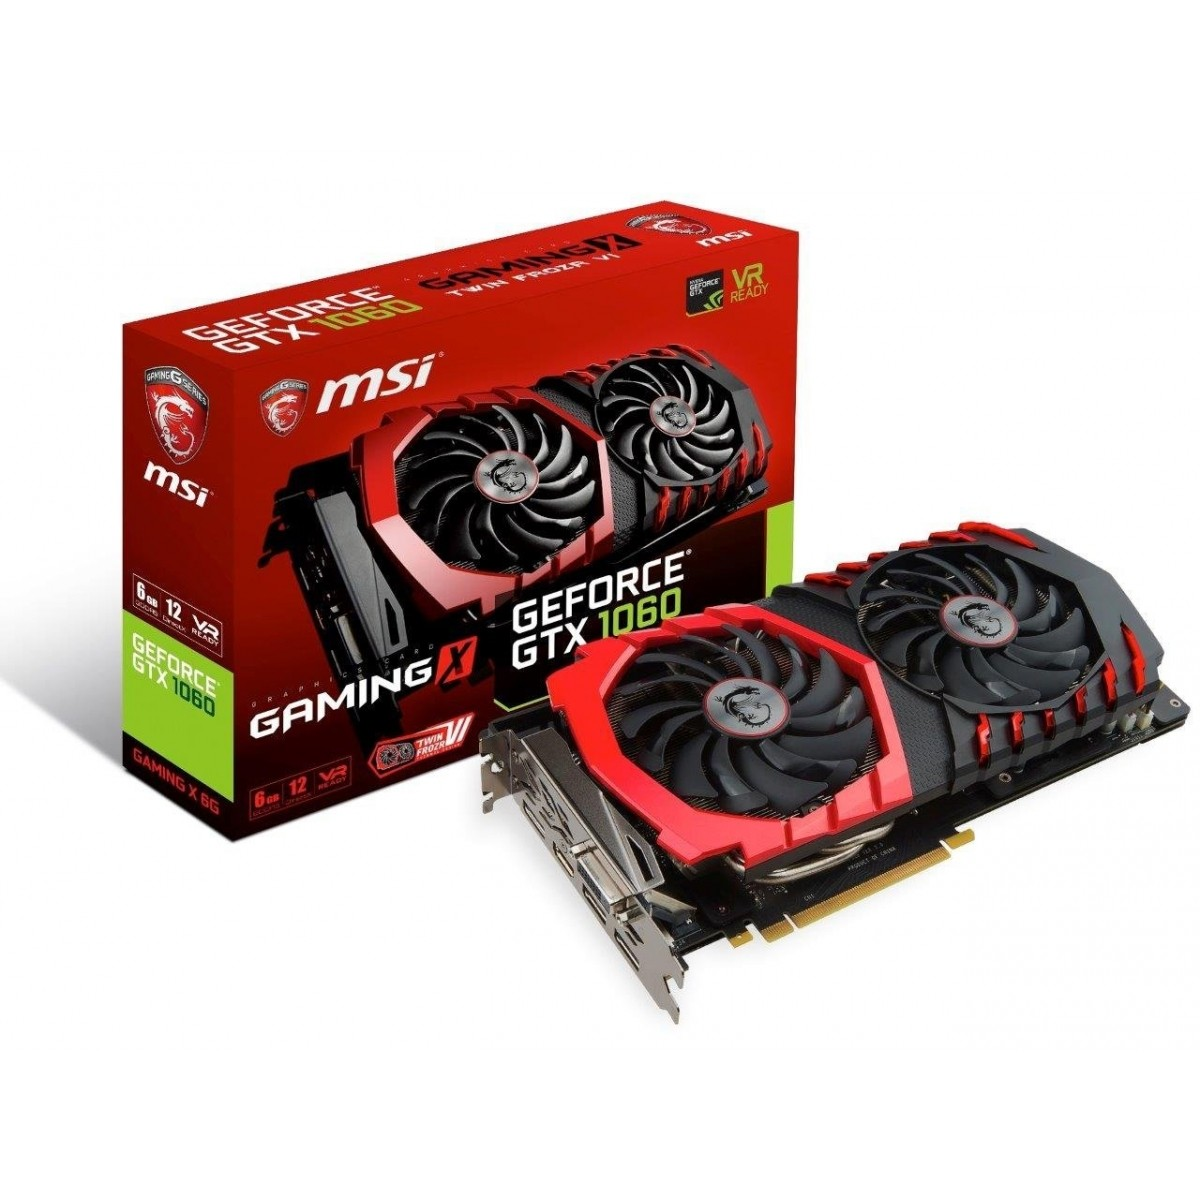 Placa de Vídeo MSI GTX 1060 Gaming X 6gb